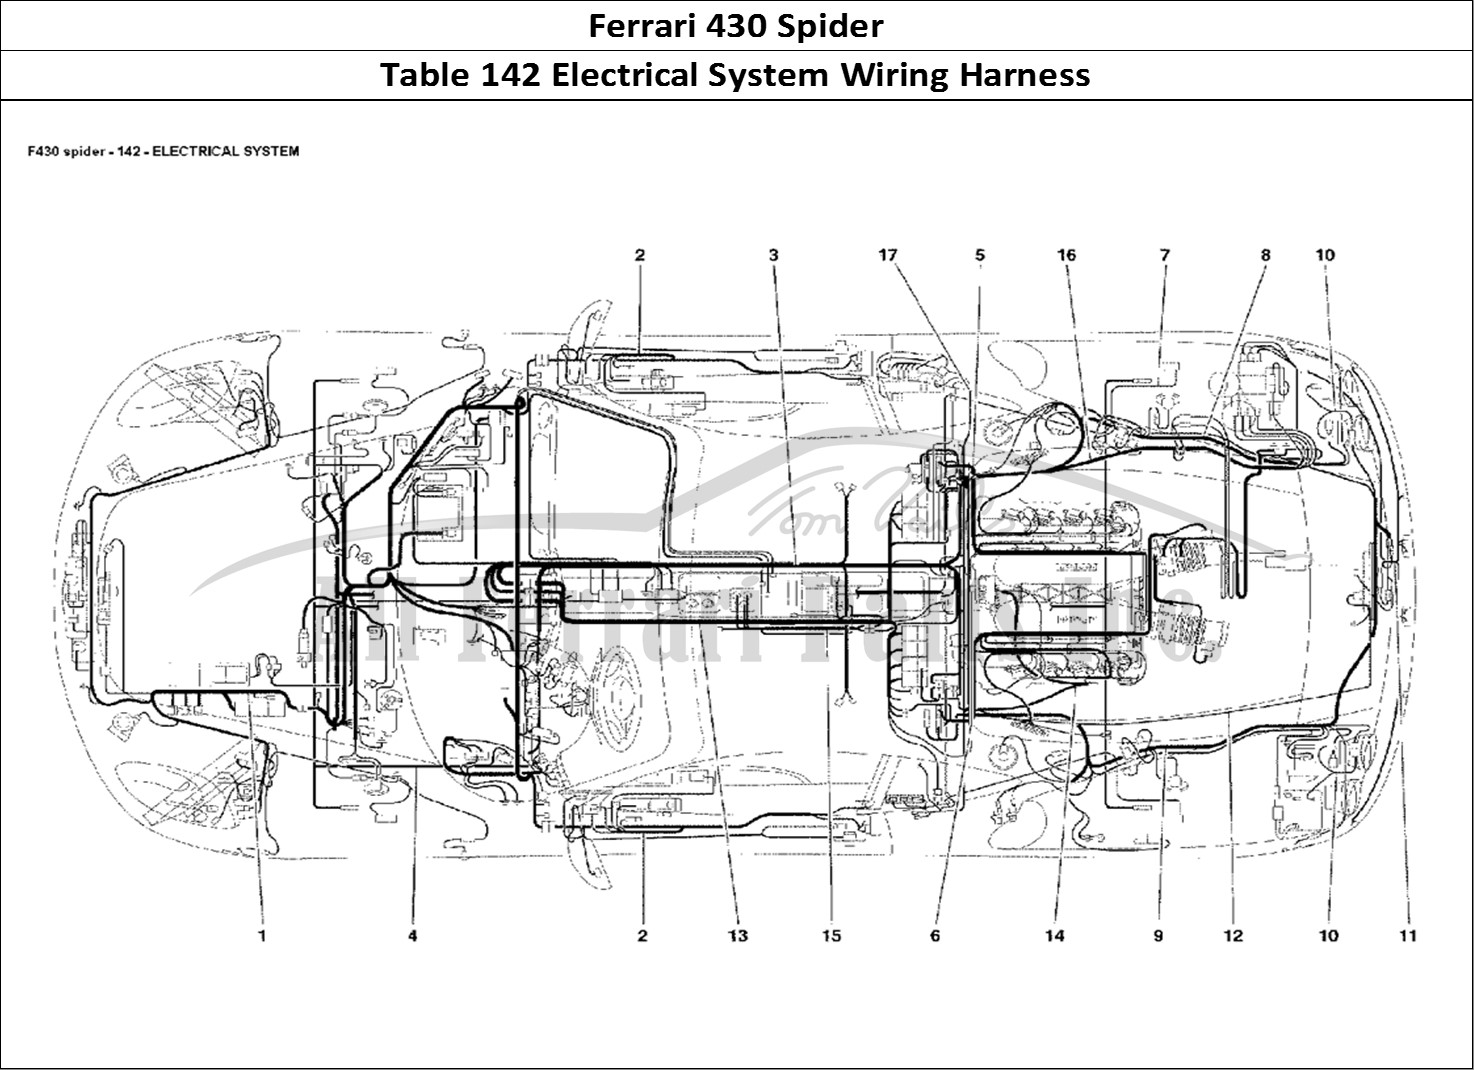 Ferrari spider bodywork table electrical system